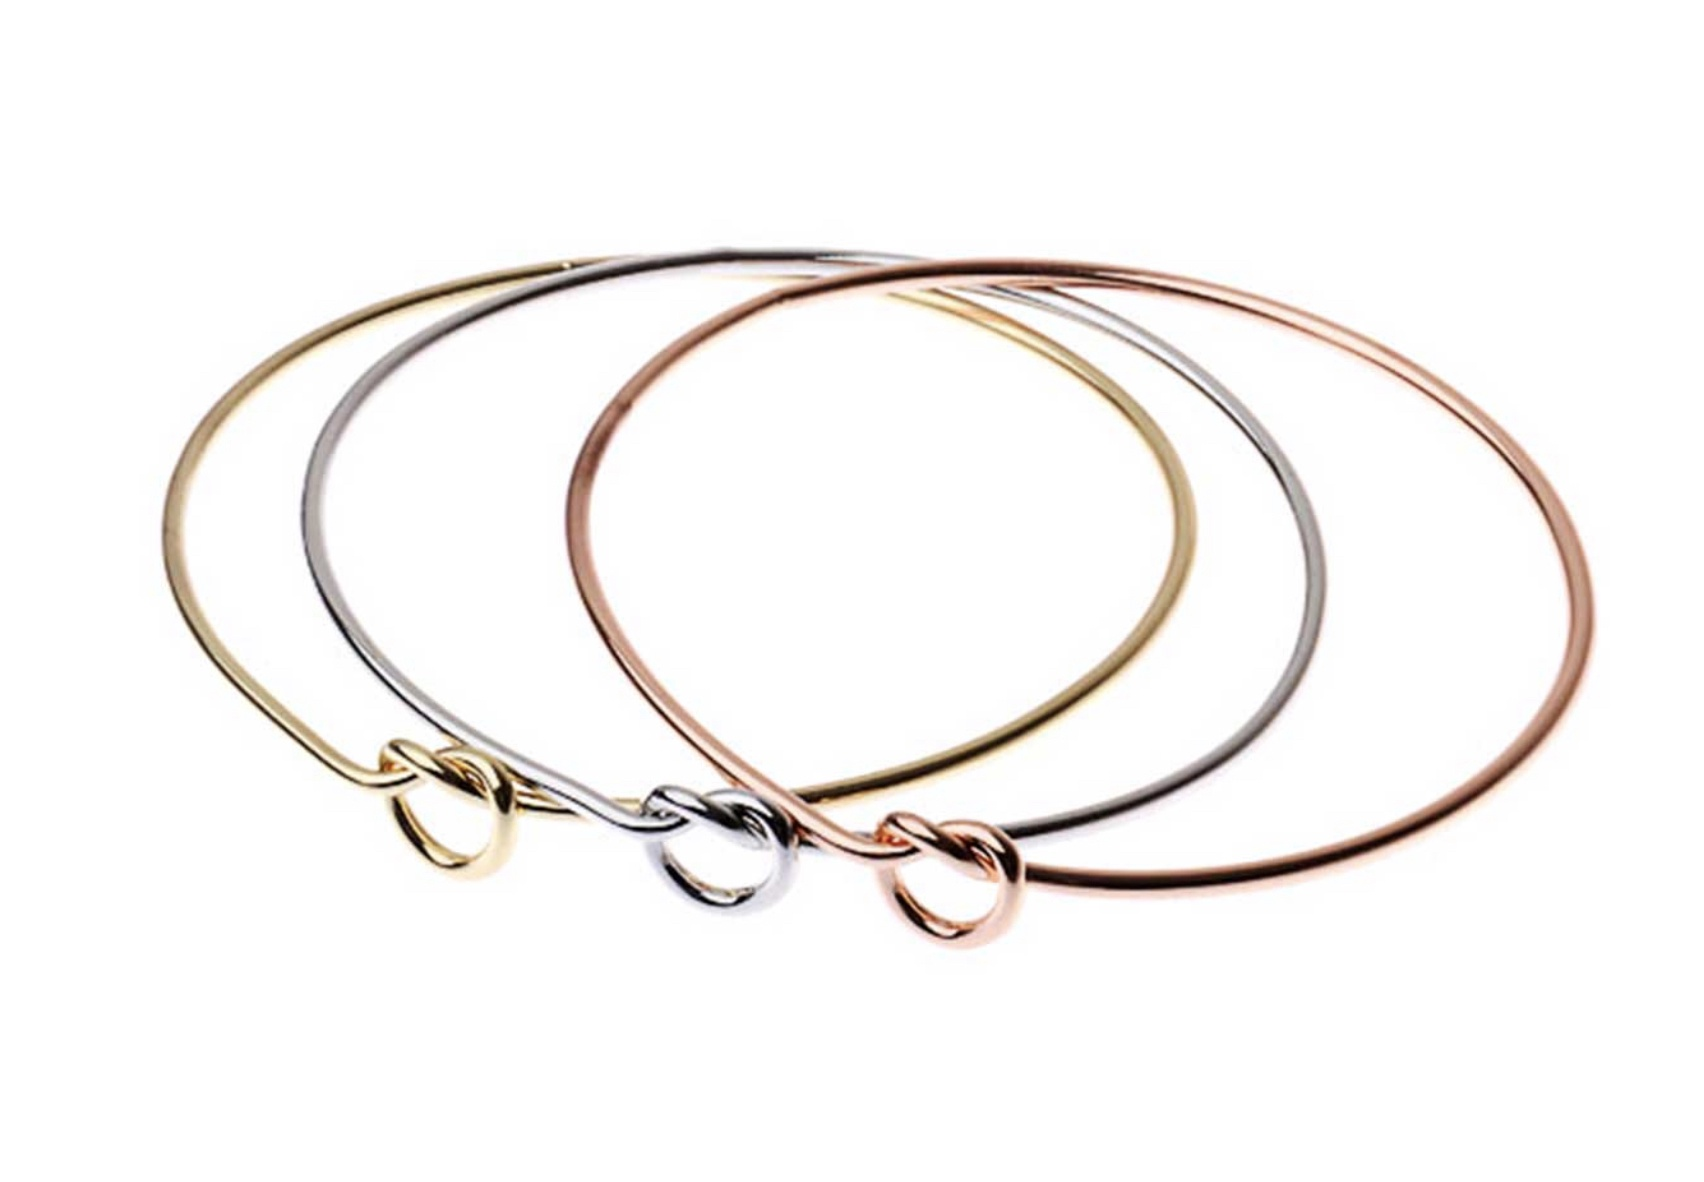 3 Heart bangles in rose gold , gold & silver